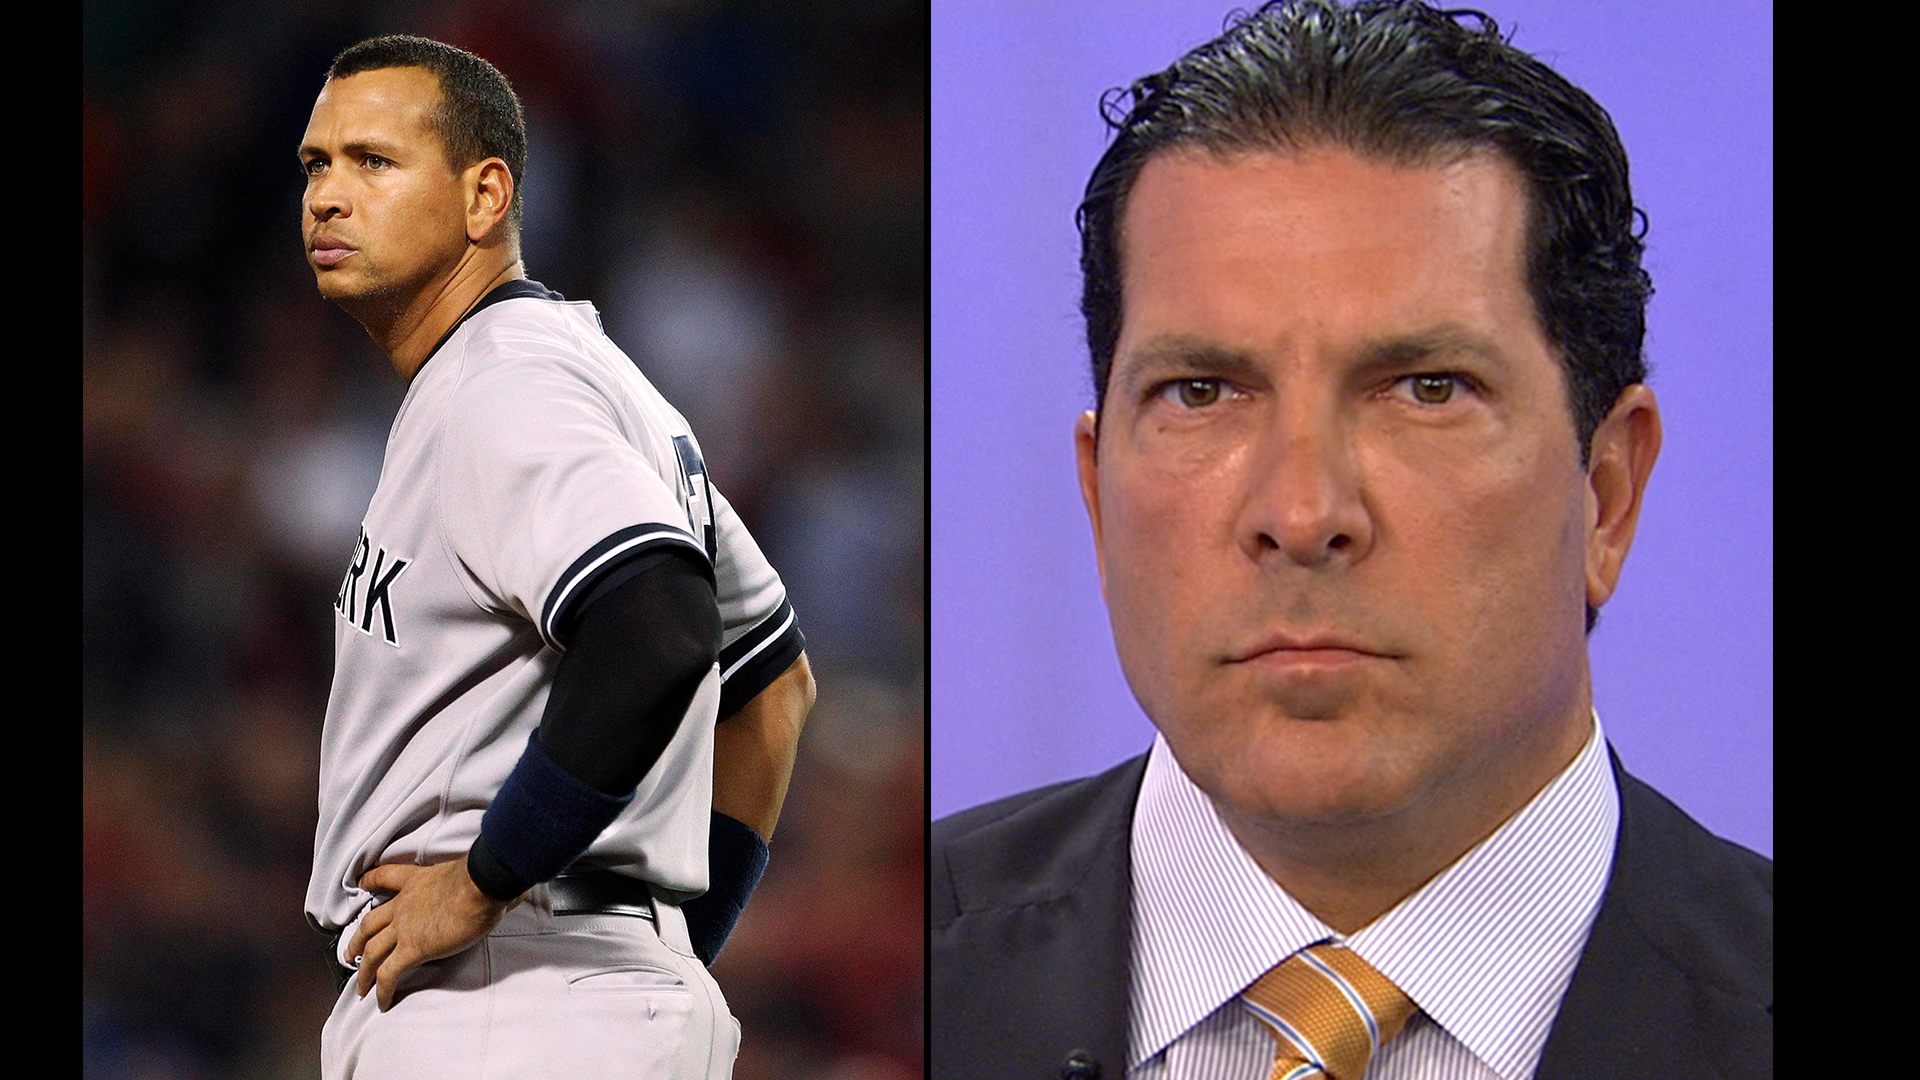 A-Rod lawyer: MLB\'s evidence will not stand up